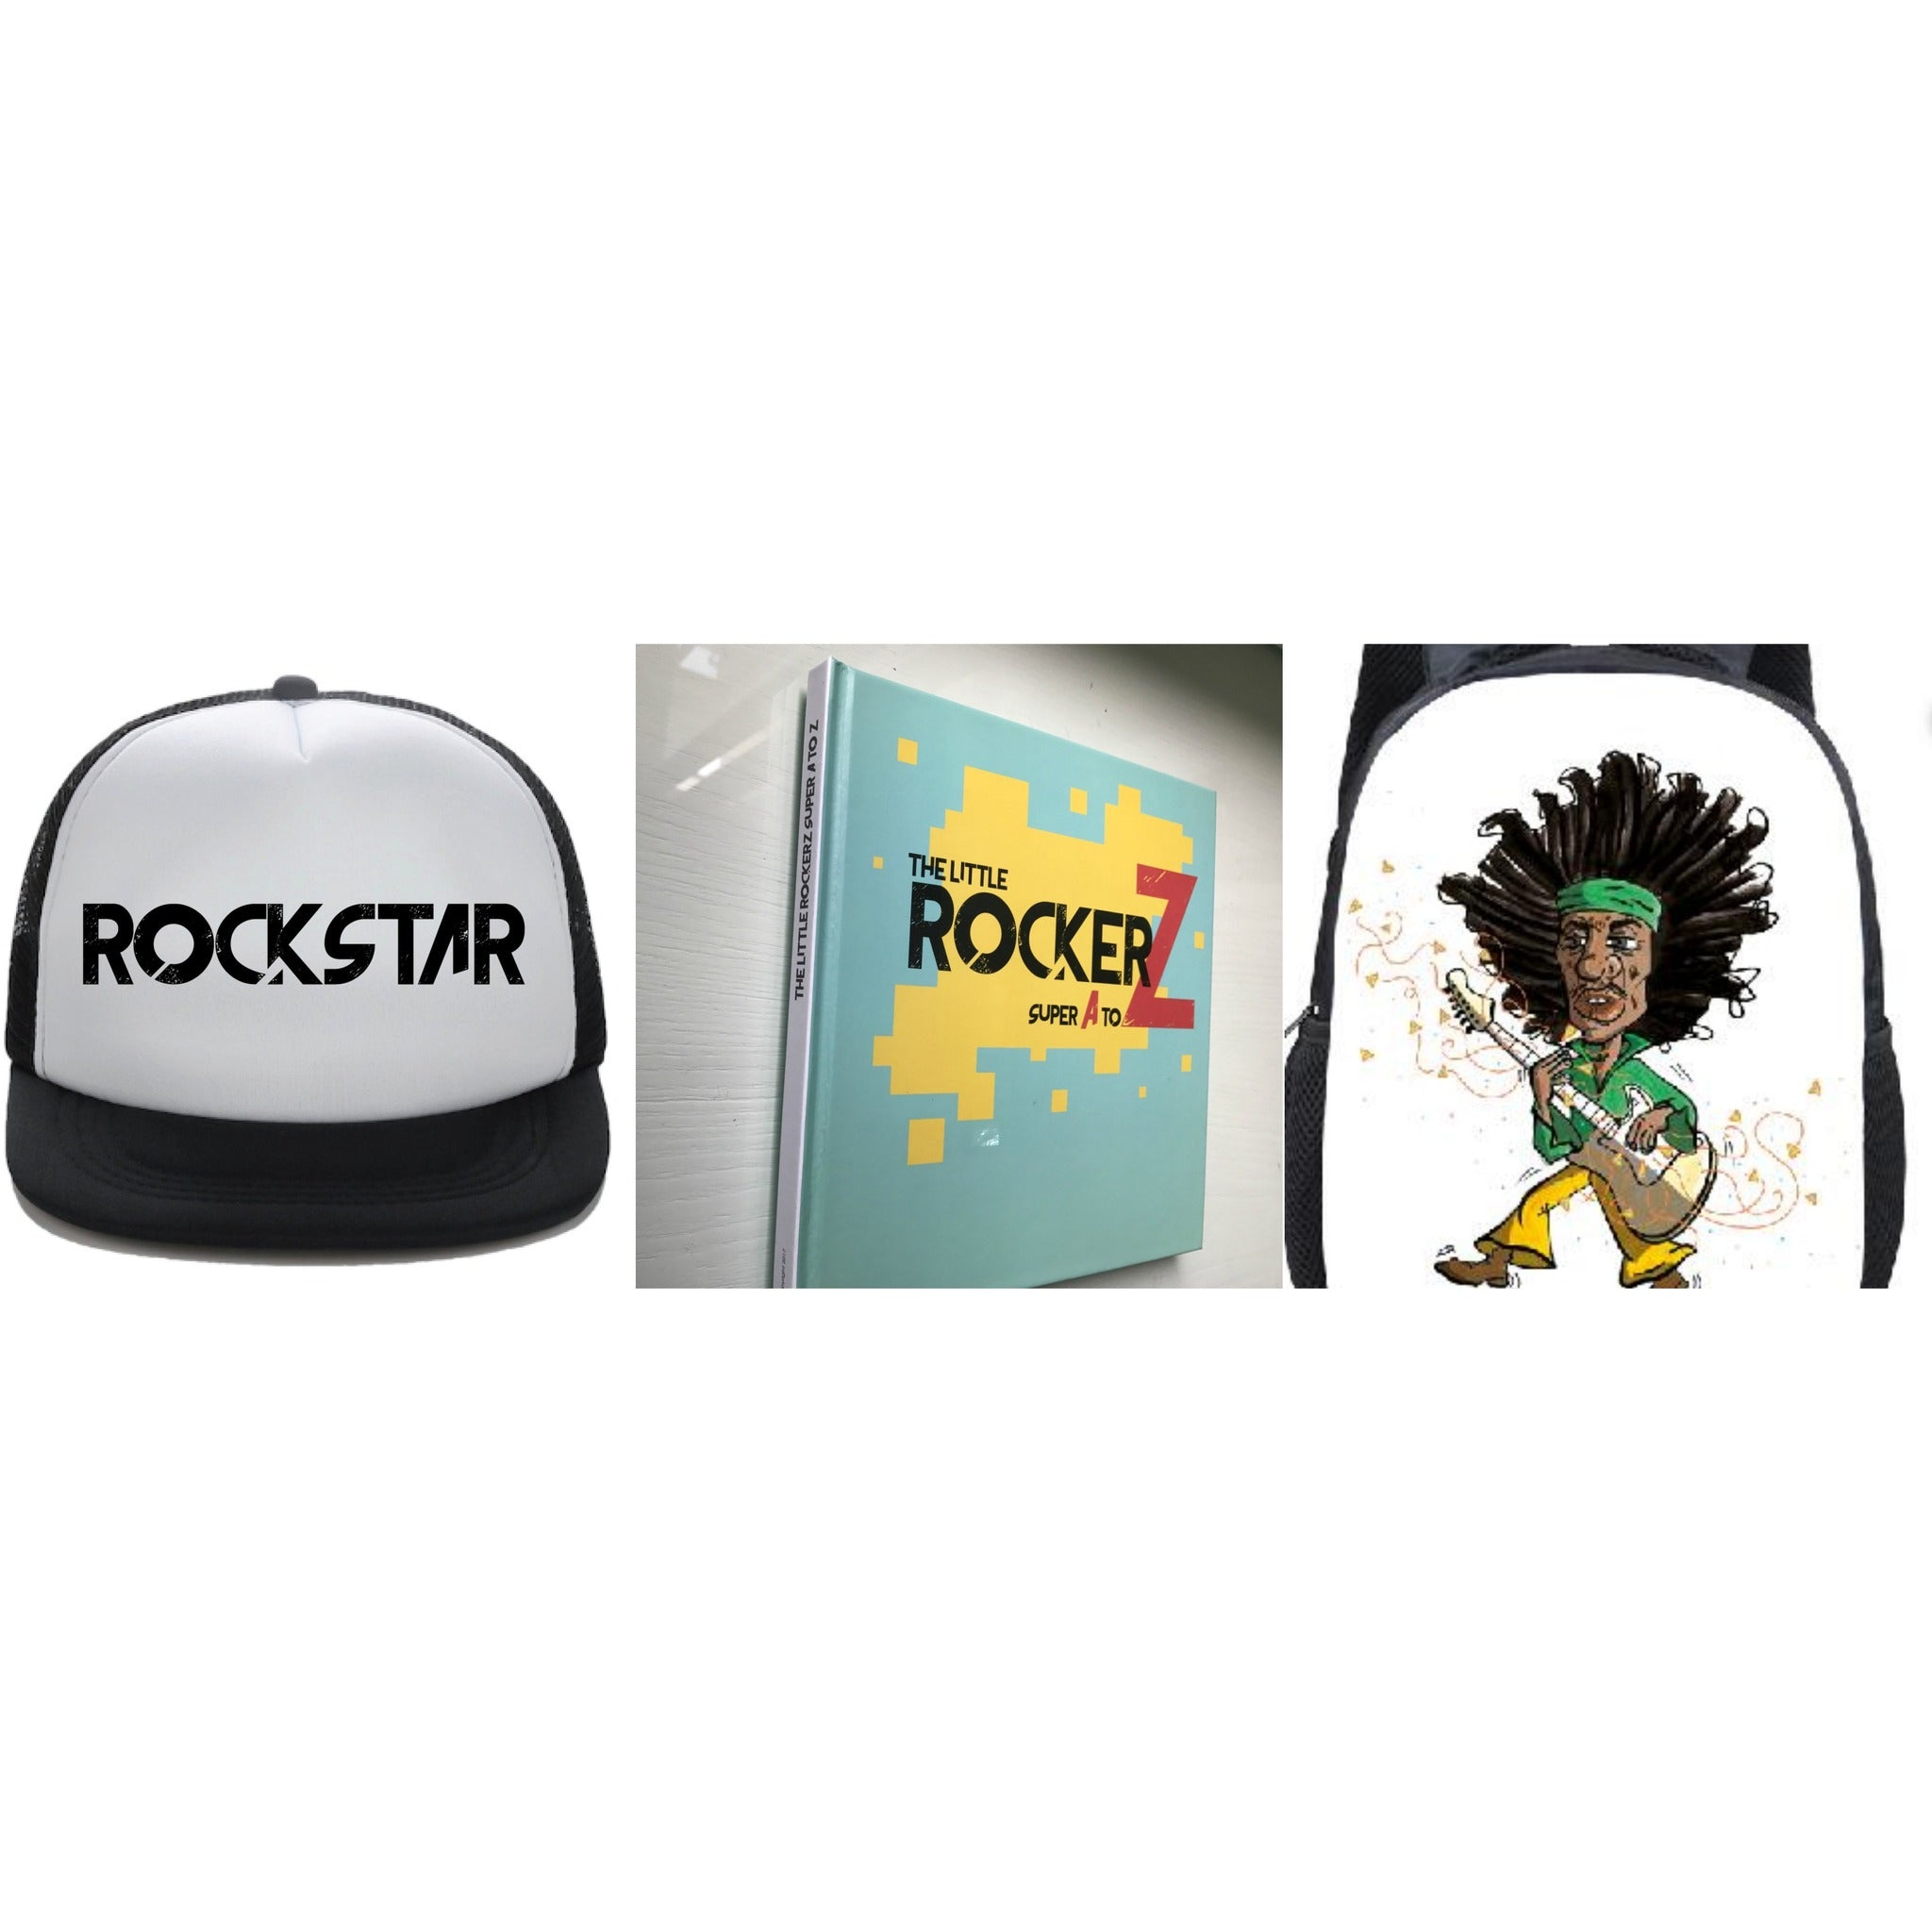 68346e0be65 The Complete Rockerz GIFT PACK! Includes Book